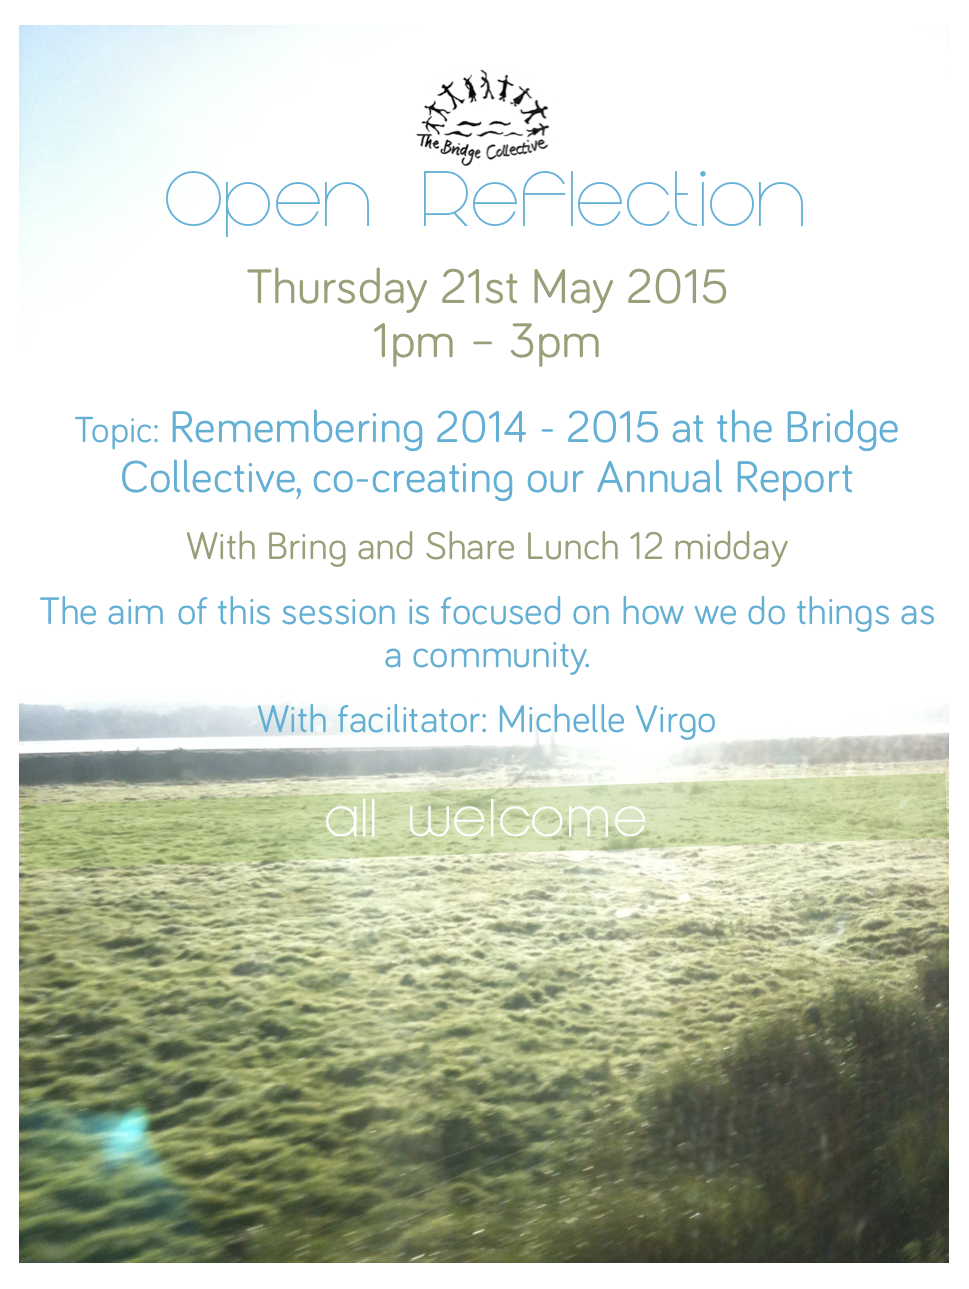 Open Reflection may 15